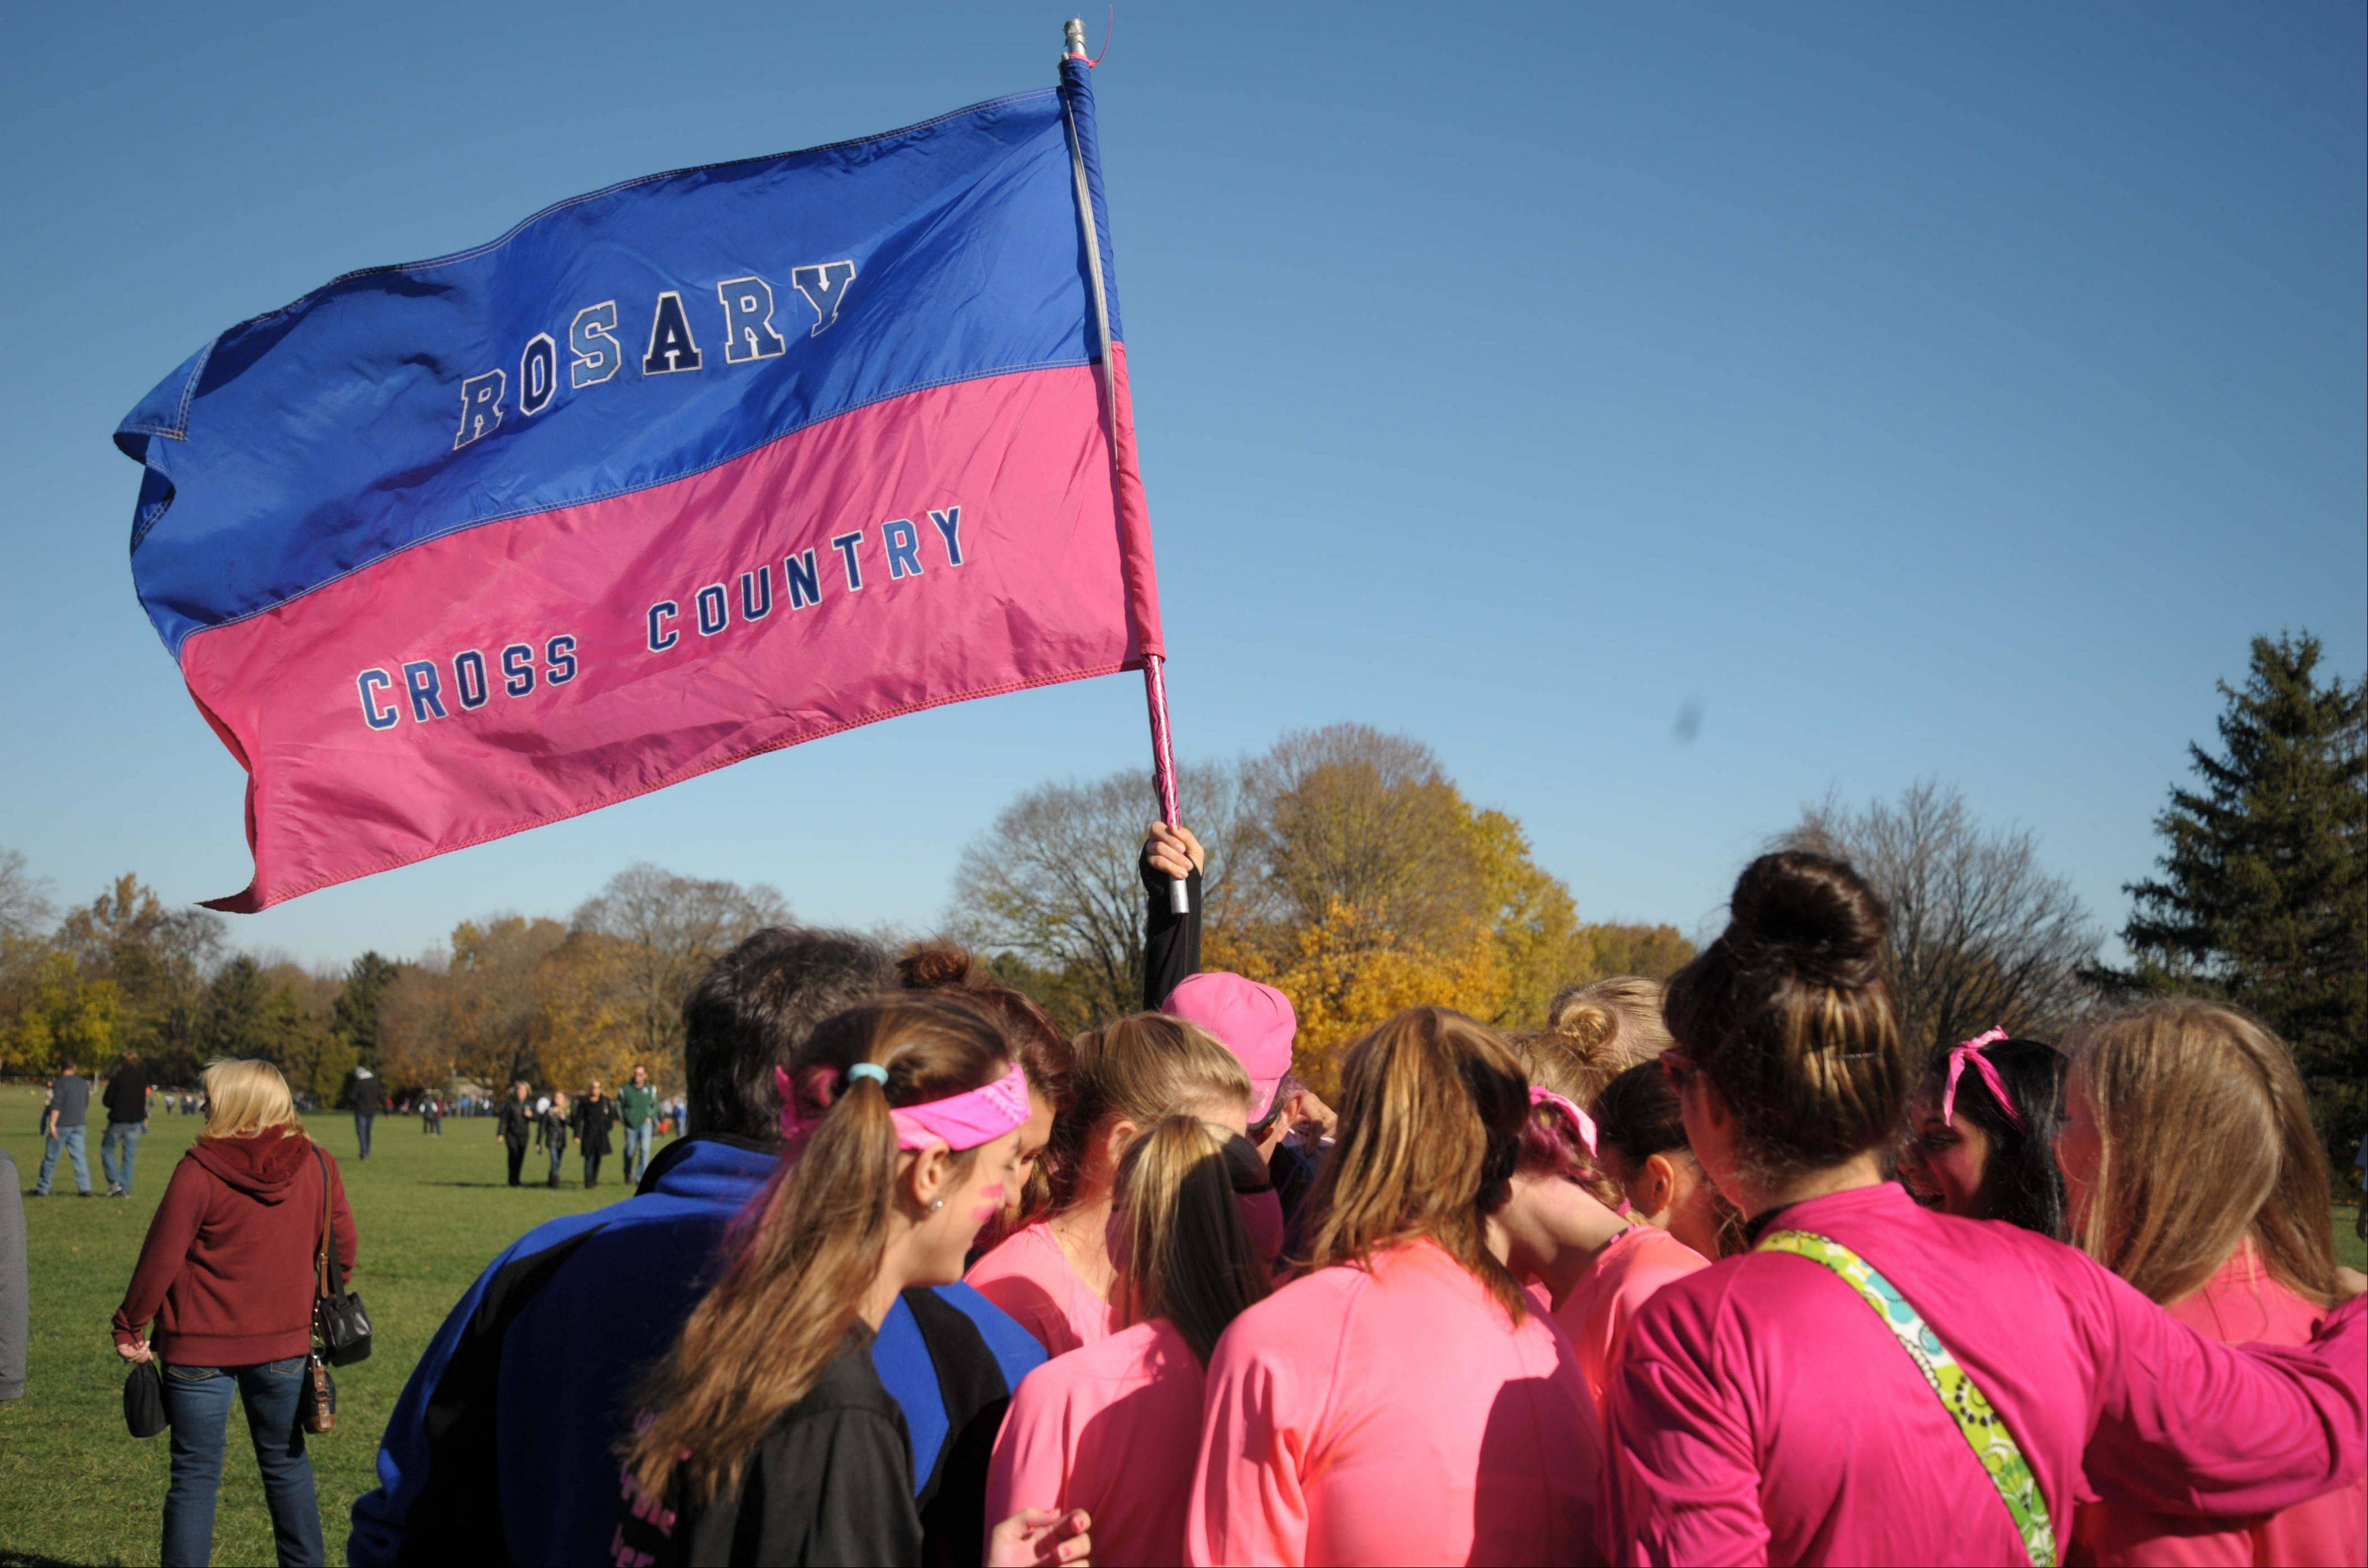 Images from the IHSA girls state cross country finals in Peoria Saturday, November 9, 2013.